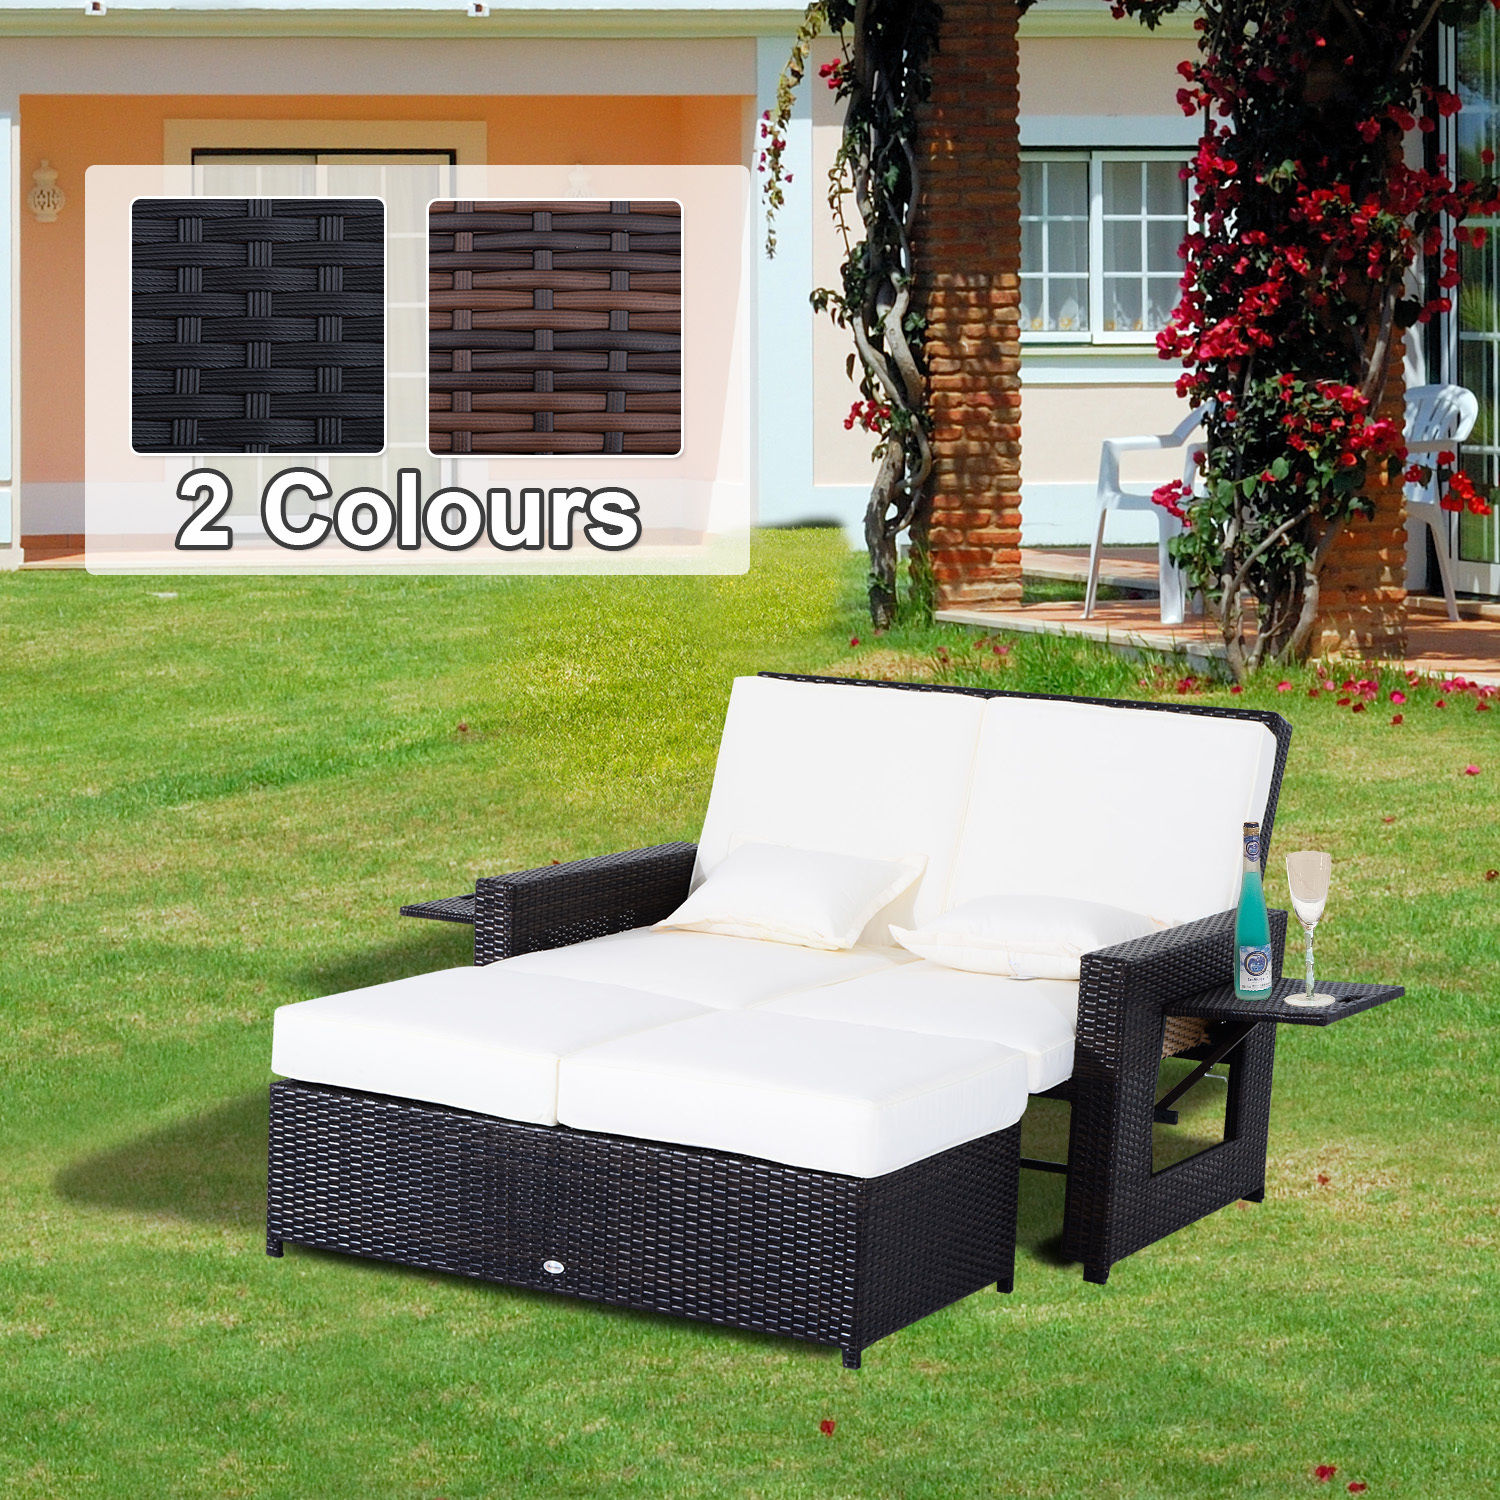 Details about outdoor garden rattan furniture set 2 seater patio sun lounger daybed sunbed new